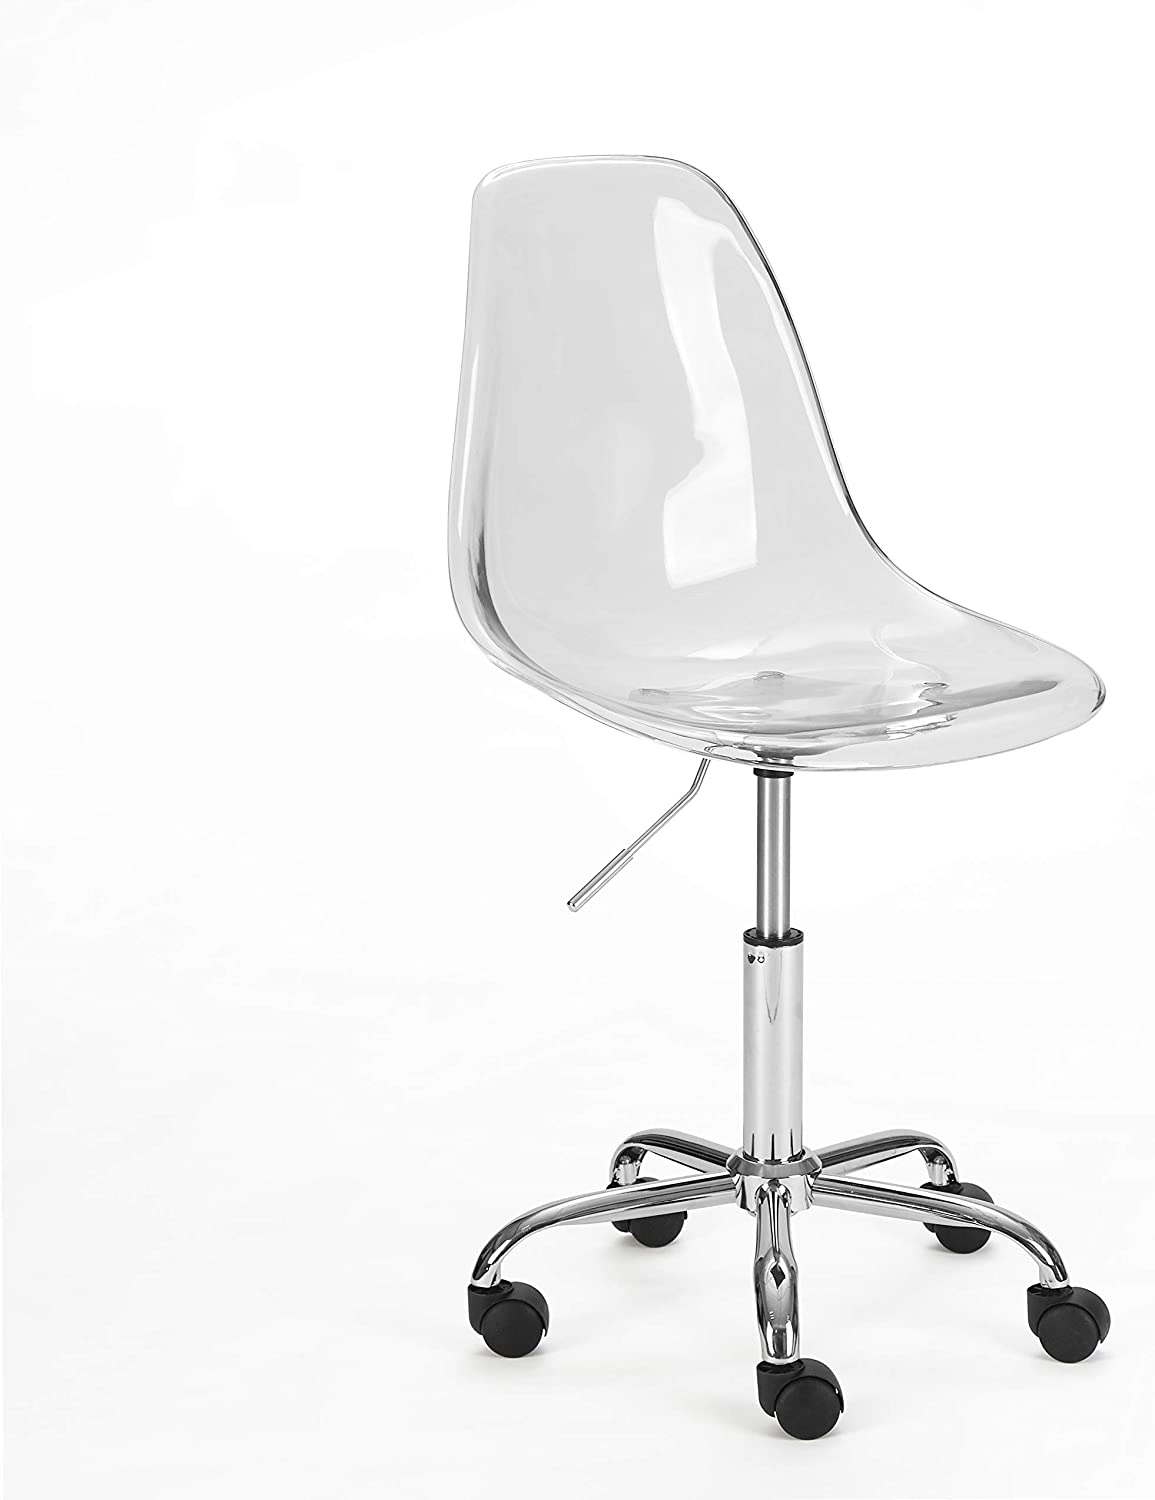 Urban Shop Acrylic Rolling Chair, Clear